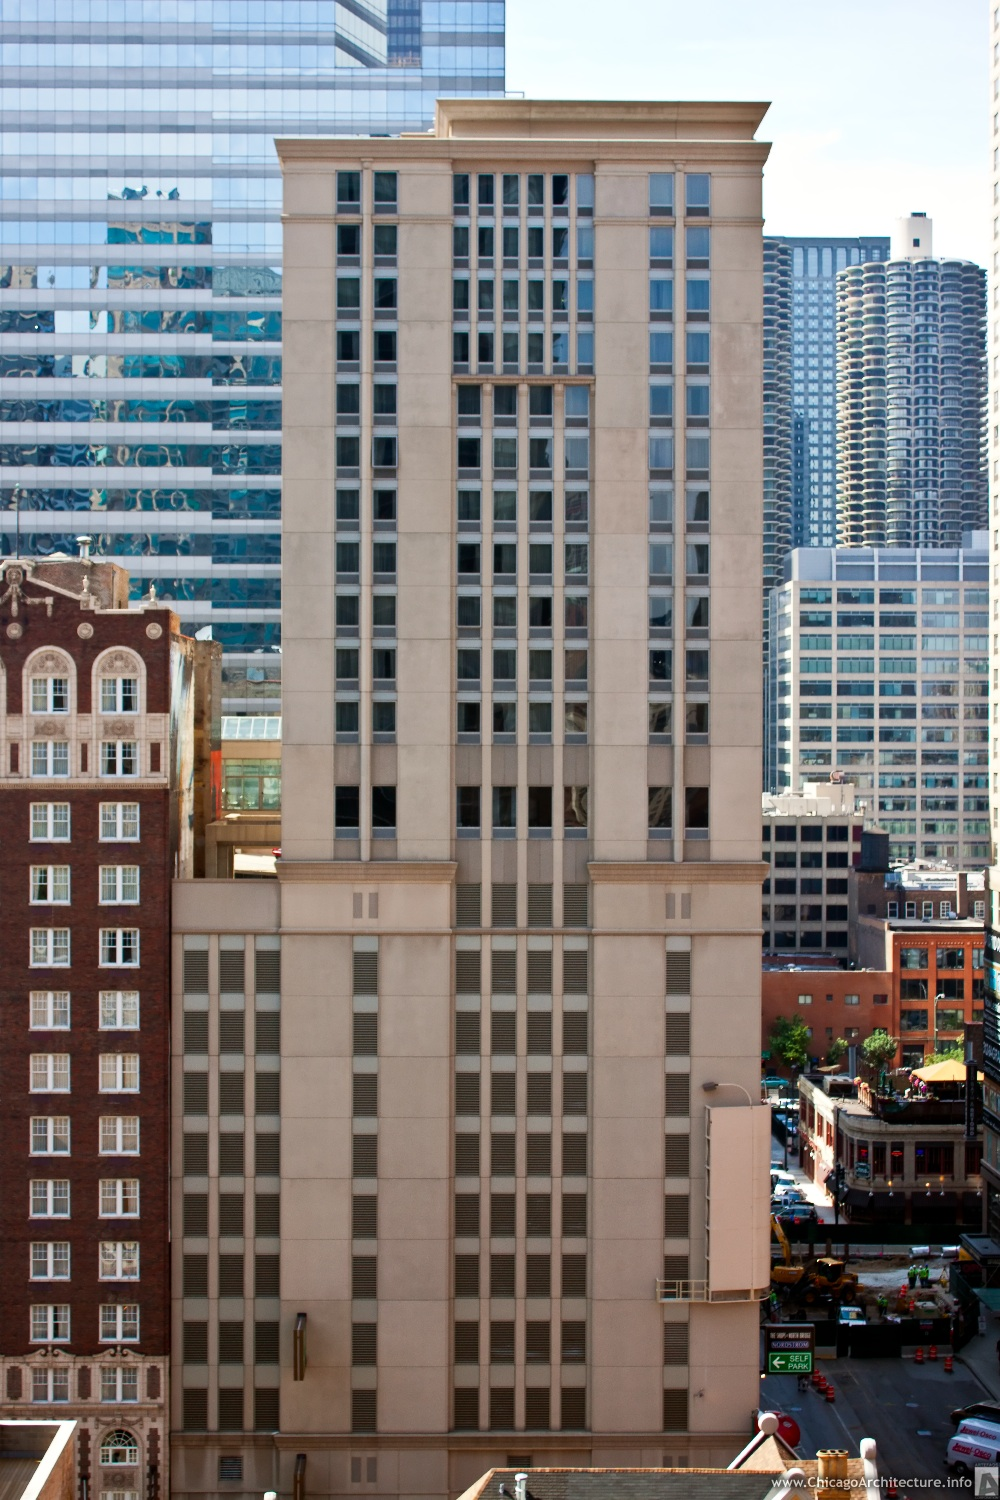 The new york city and chicago appreciation thread page - Hilton garden inn grand ave chicago ...